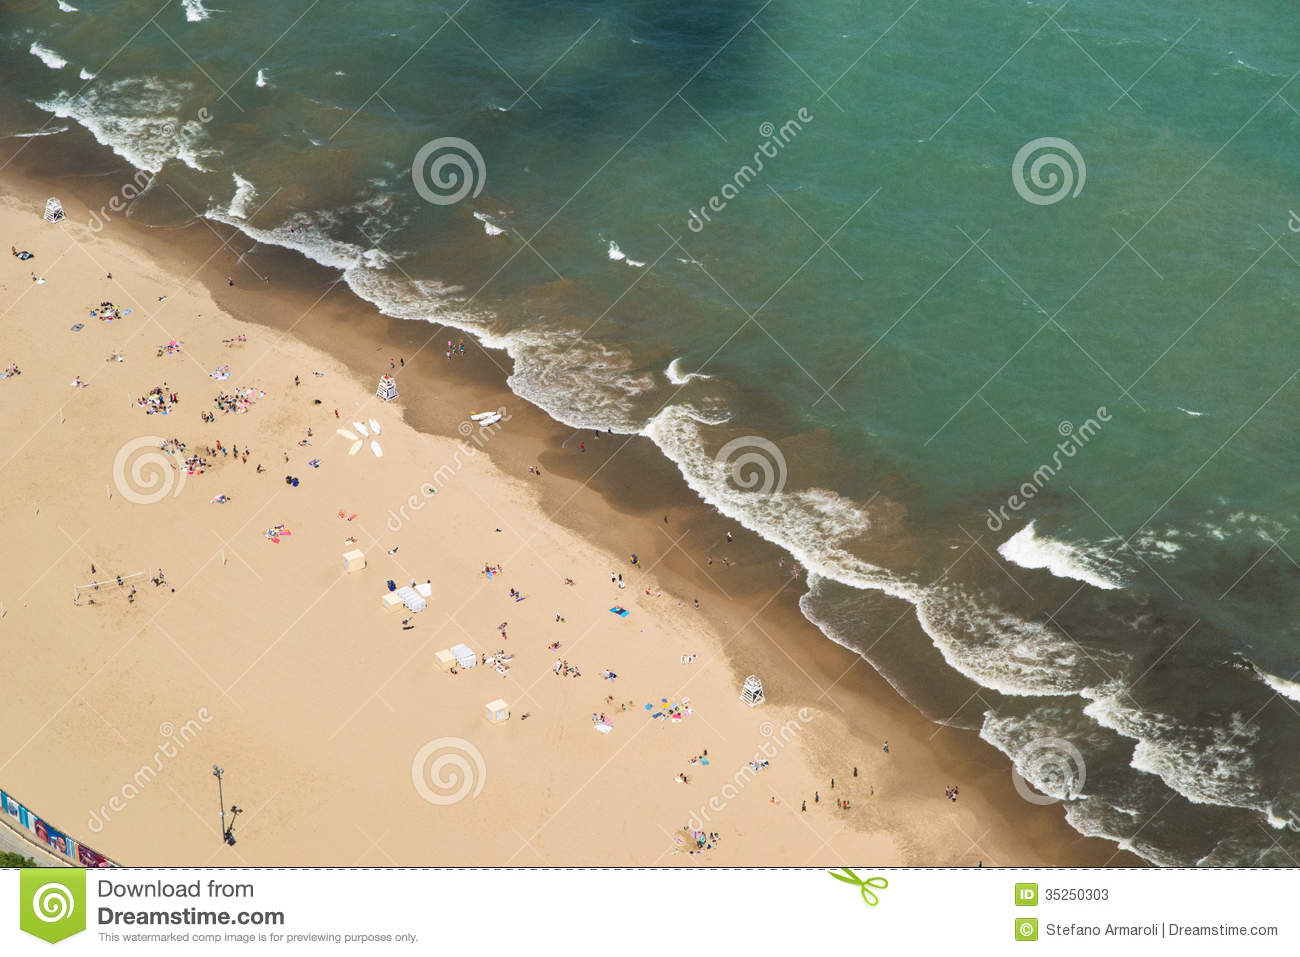 beach lake online dating Nudist beach photos, nudist pics thousands of people following new life style nudism, its great and funny, people to find same as who love nudism a nudist beach is another such thing you.